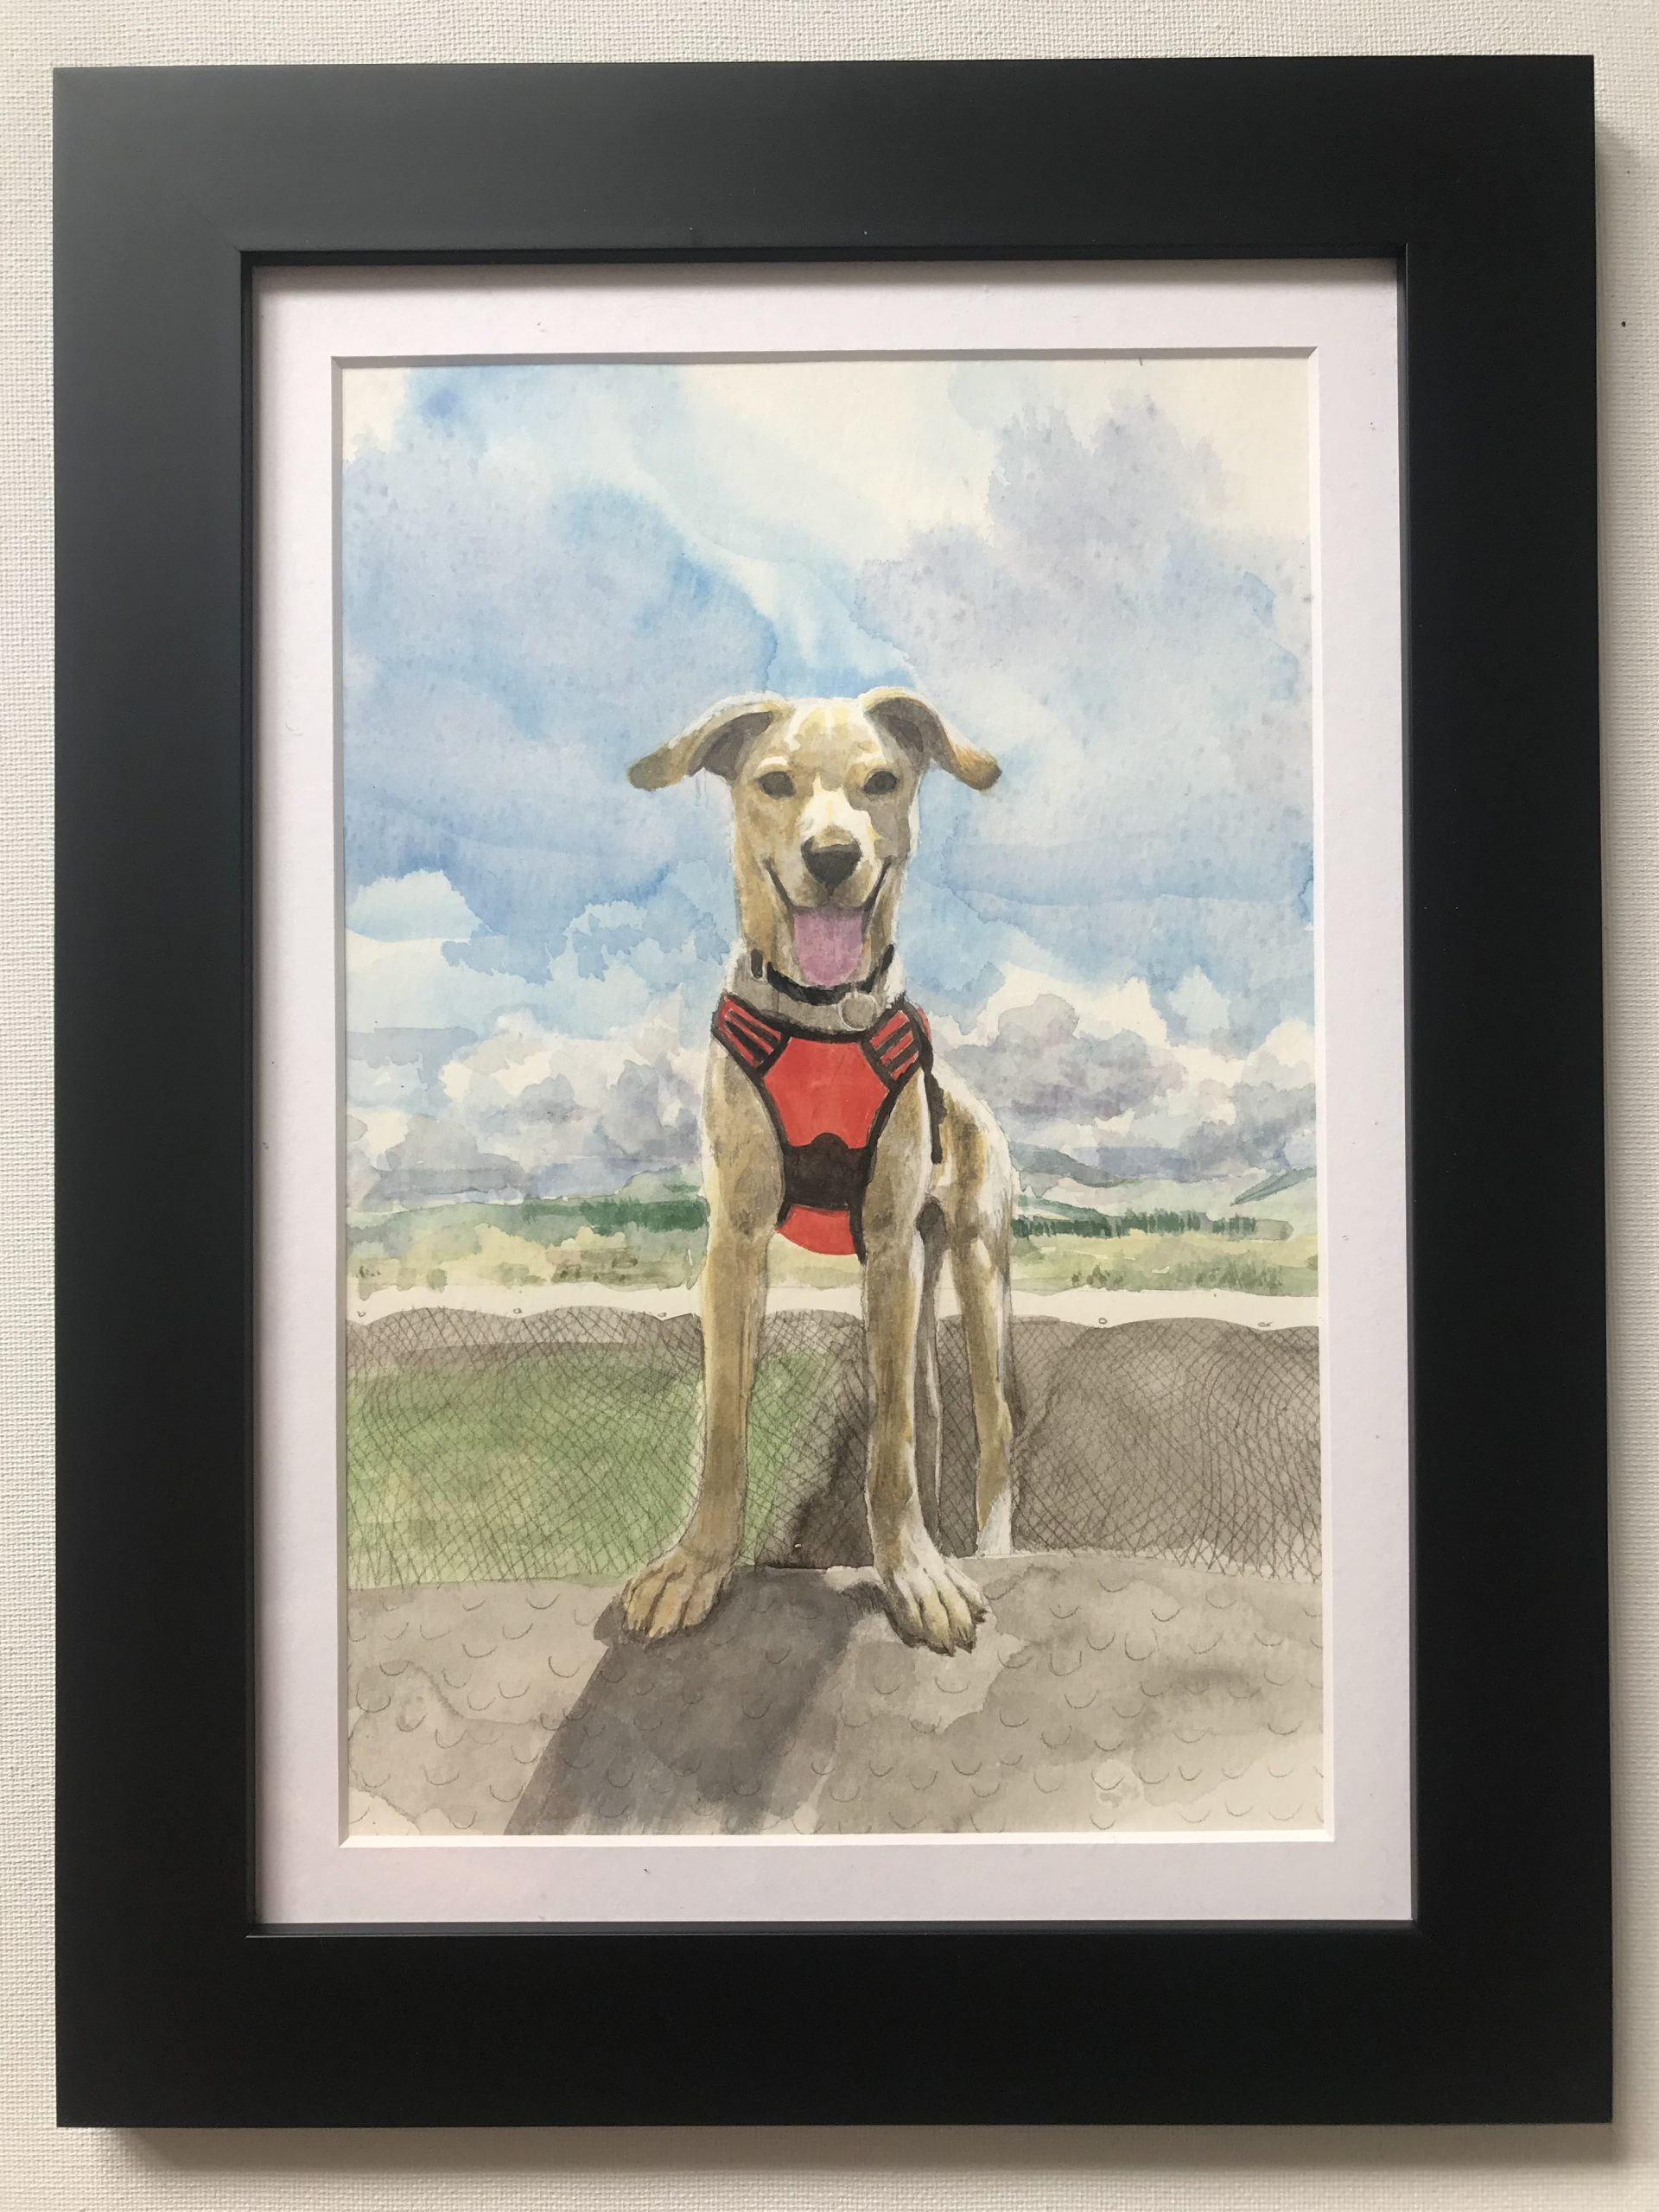 watercolour painting of a dog